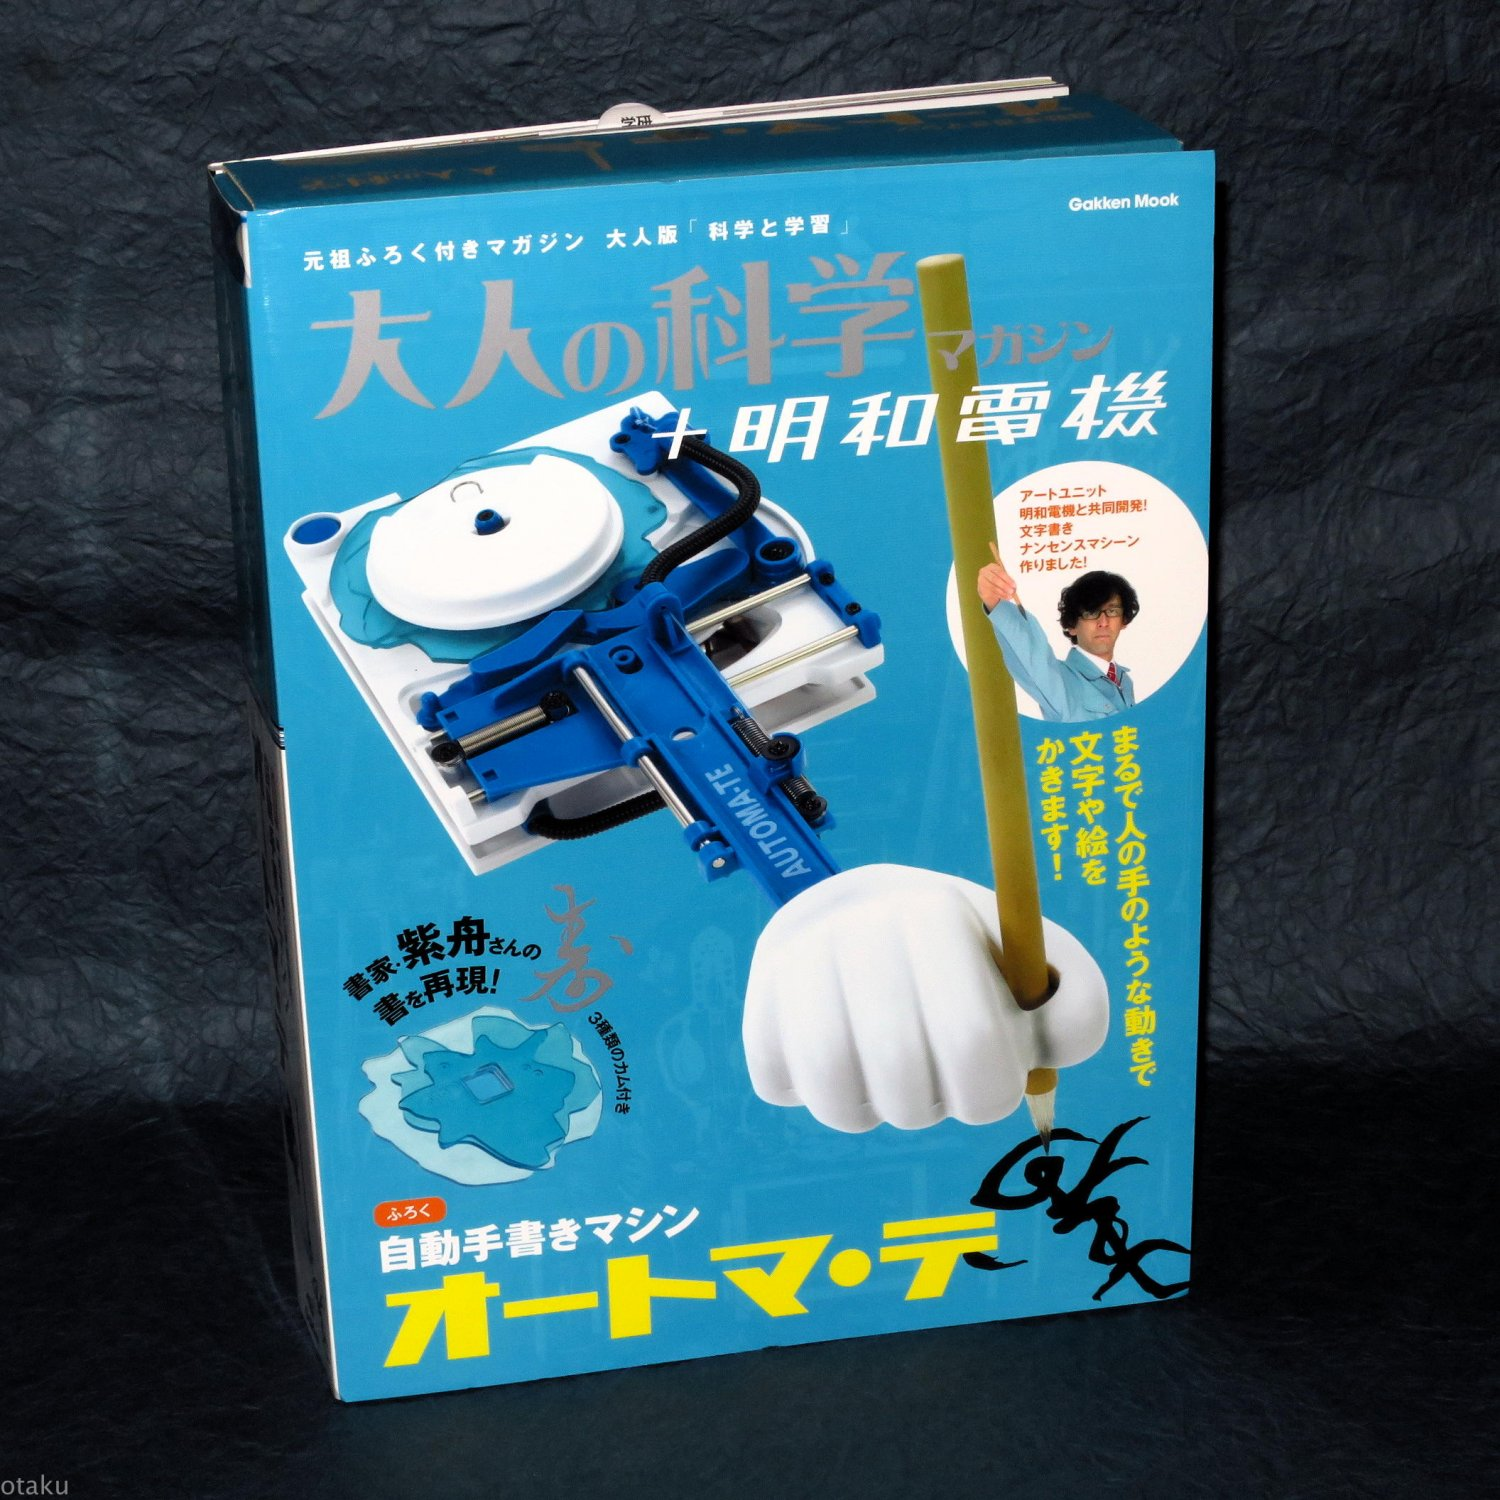 Gakken Mook Automa-te Automatic Handwriting Machine Japan Model Kit Book NEW